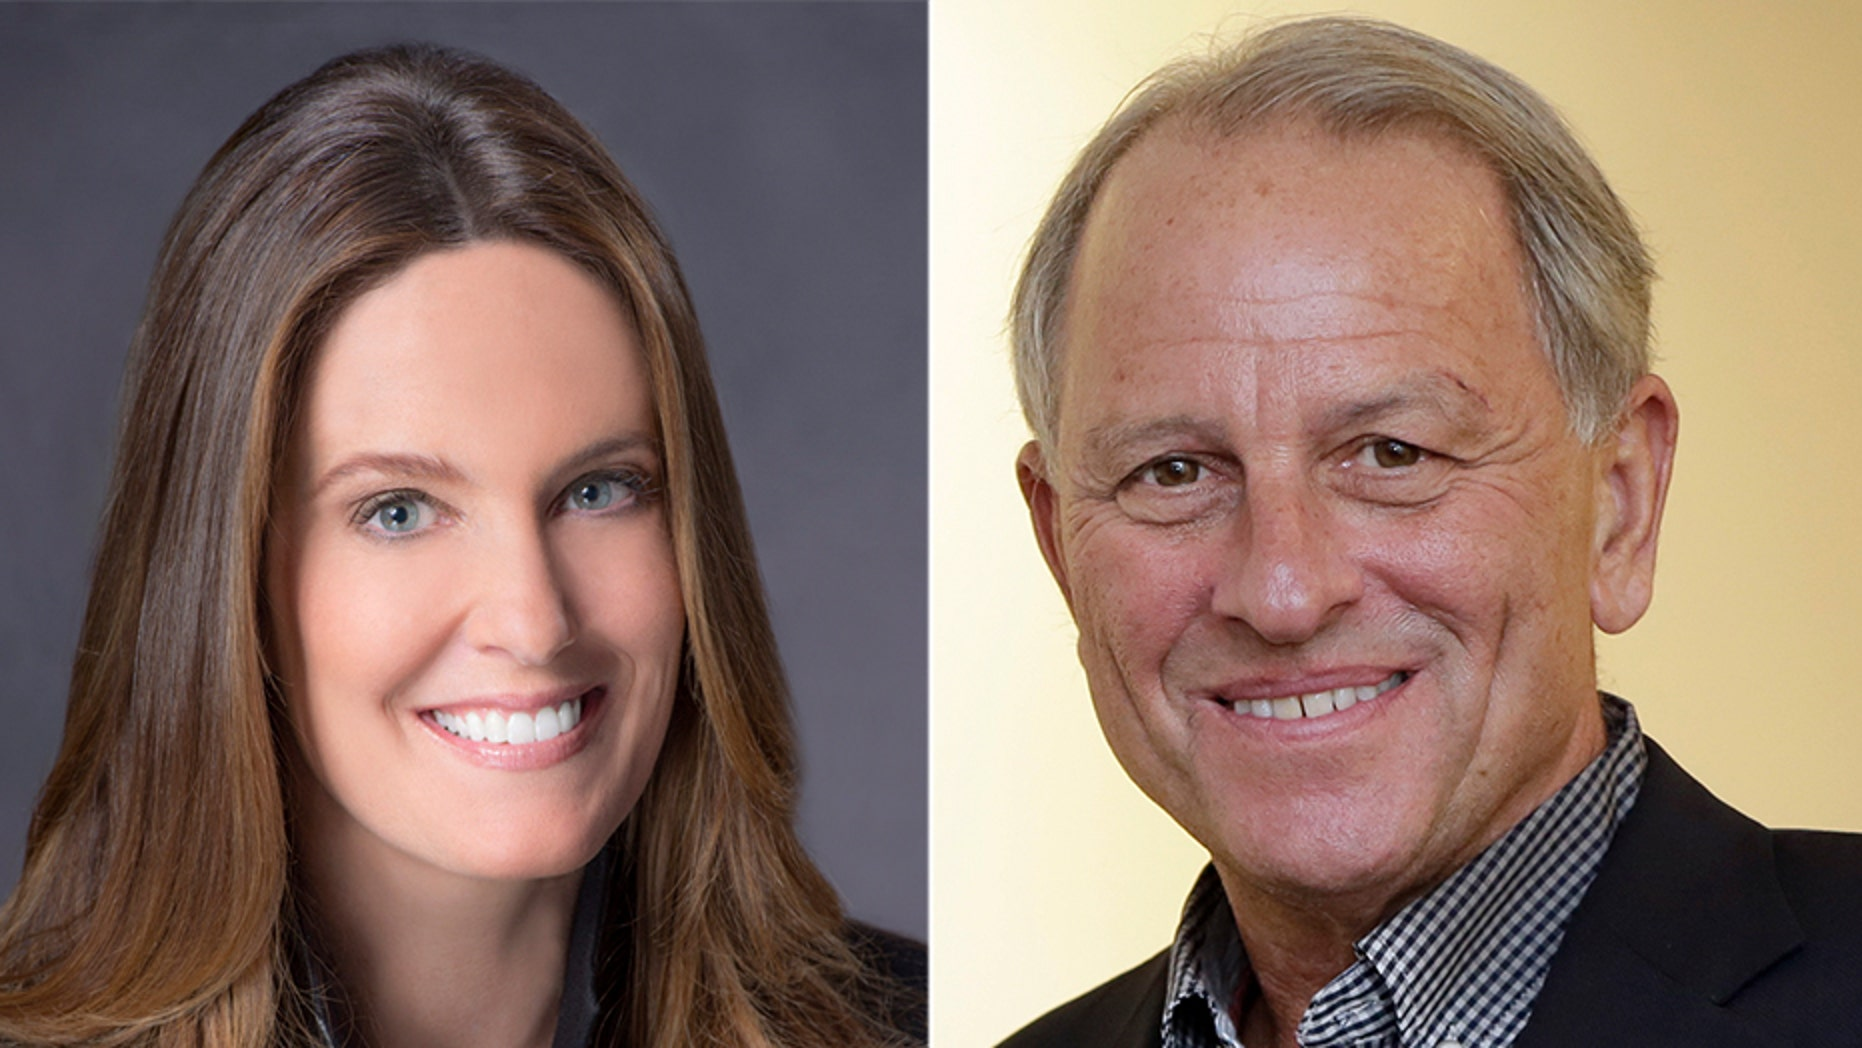 60 Minutes Correspondent Sharyn Alfonsi Didnt Think Jeff Fager Should Be Fired